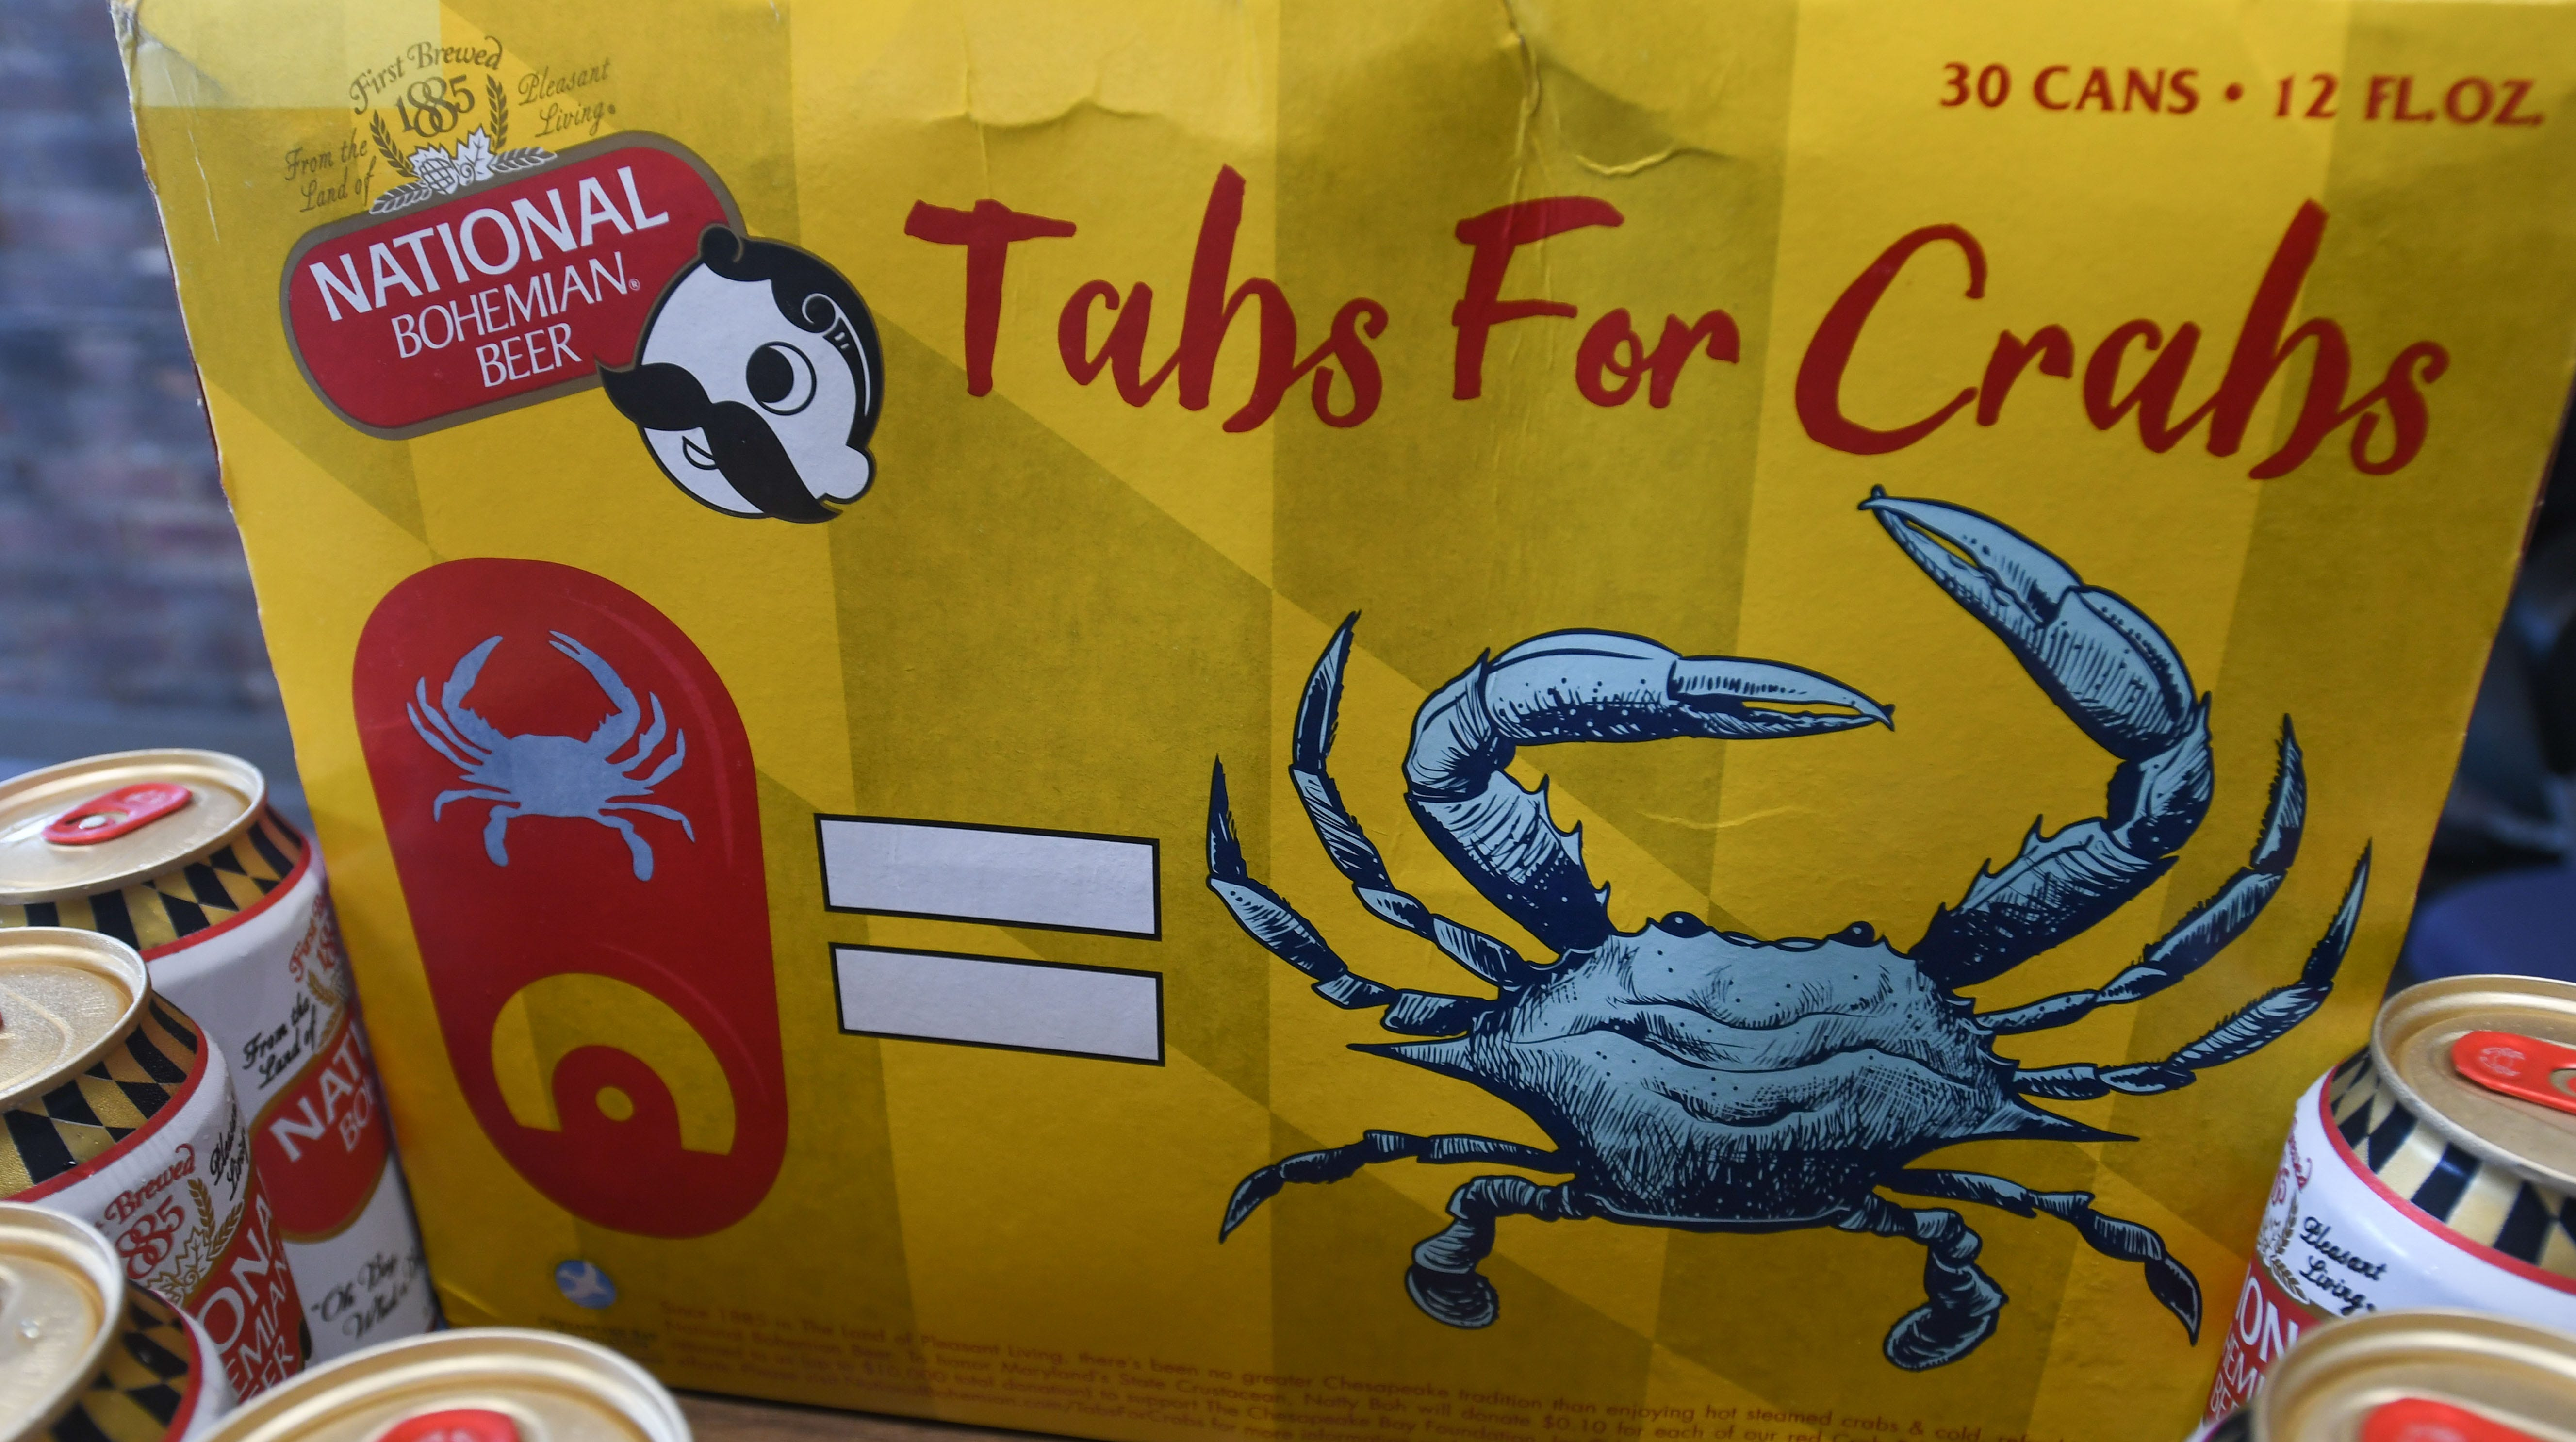 National Bohemian Beer Company announced Tuesday the roll out of its second annual summer Tabs for Crabs program. For each red, crab-etched can tab that is collected and returned before Oct.1, National Bohemian will donate 10 cents to The Chesapeake Bay Foundation'slocal blue crab research and habitat restoration efforts, with a total maximum donation goal of $10,000, according to a news release.